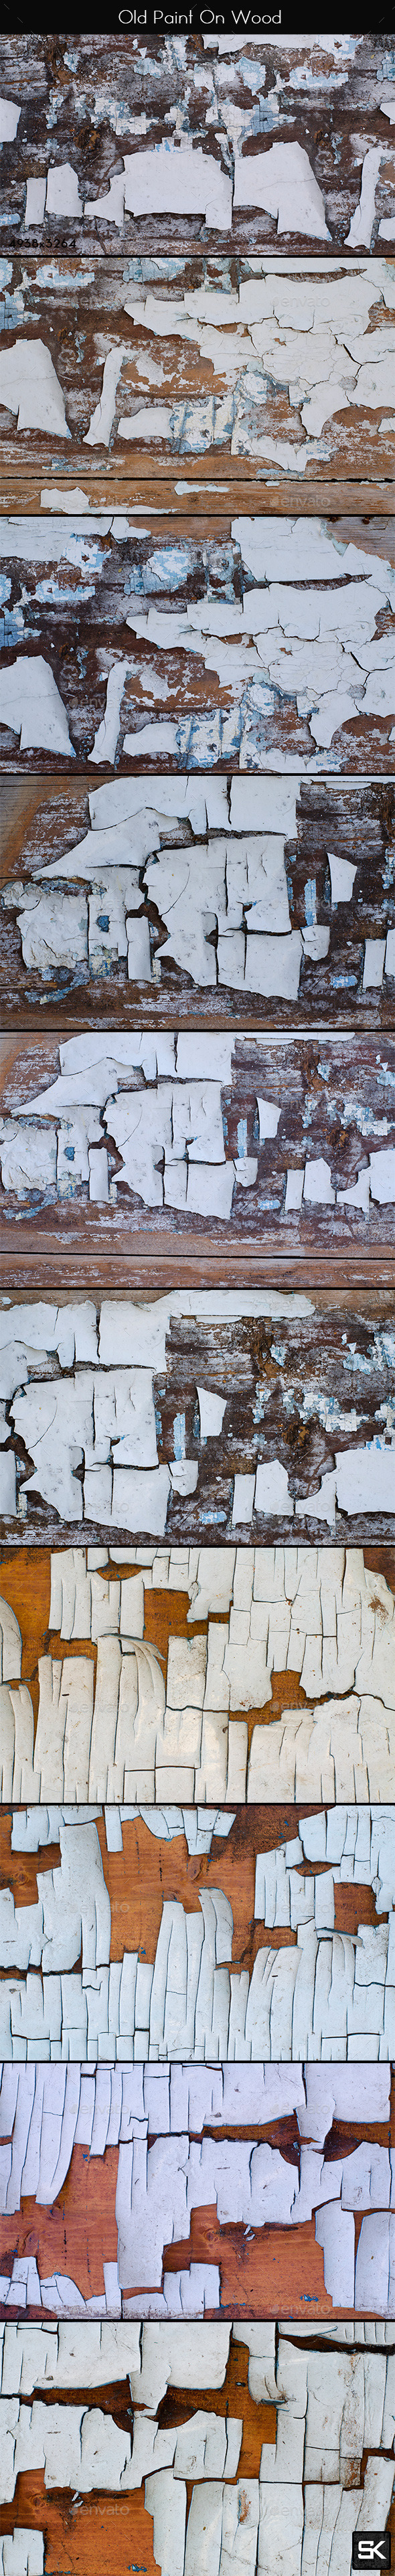 Old Paint On Wood - Wood Textures